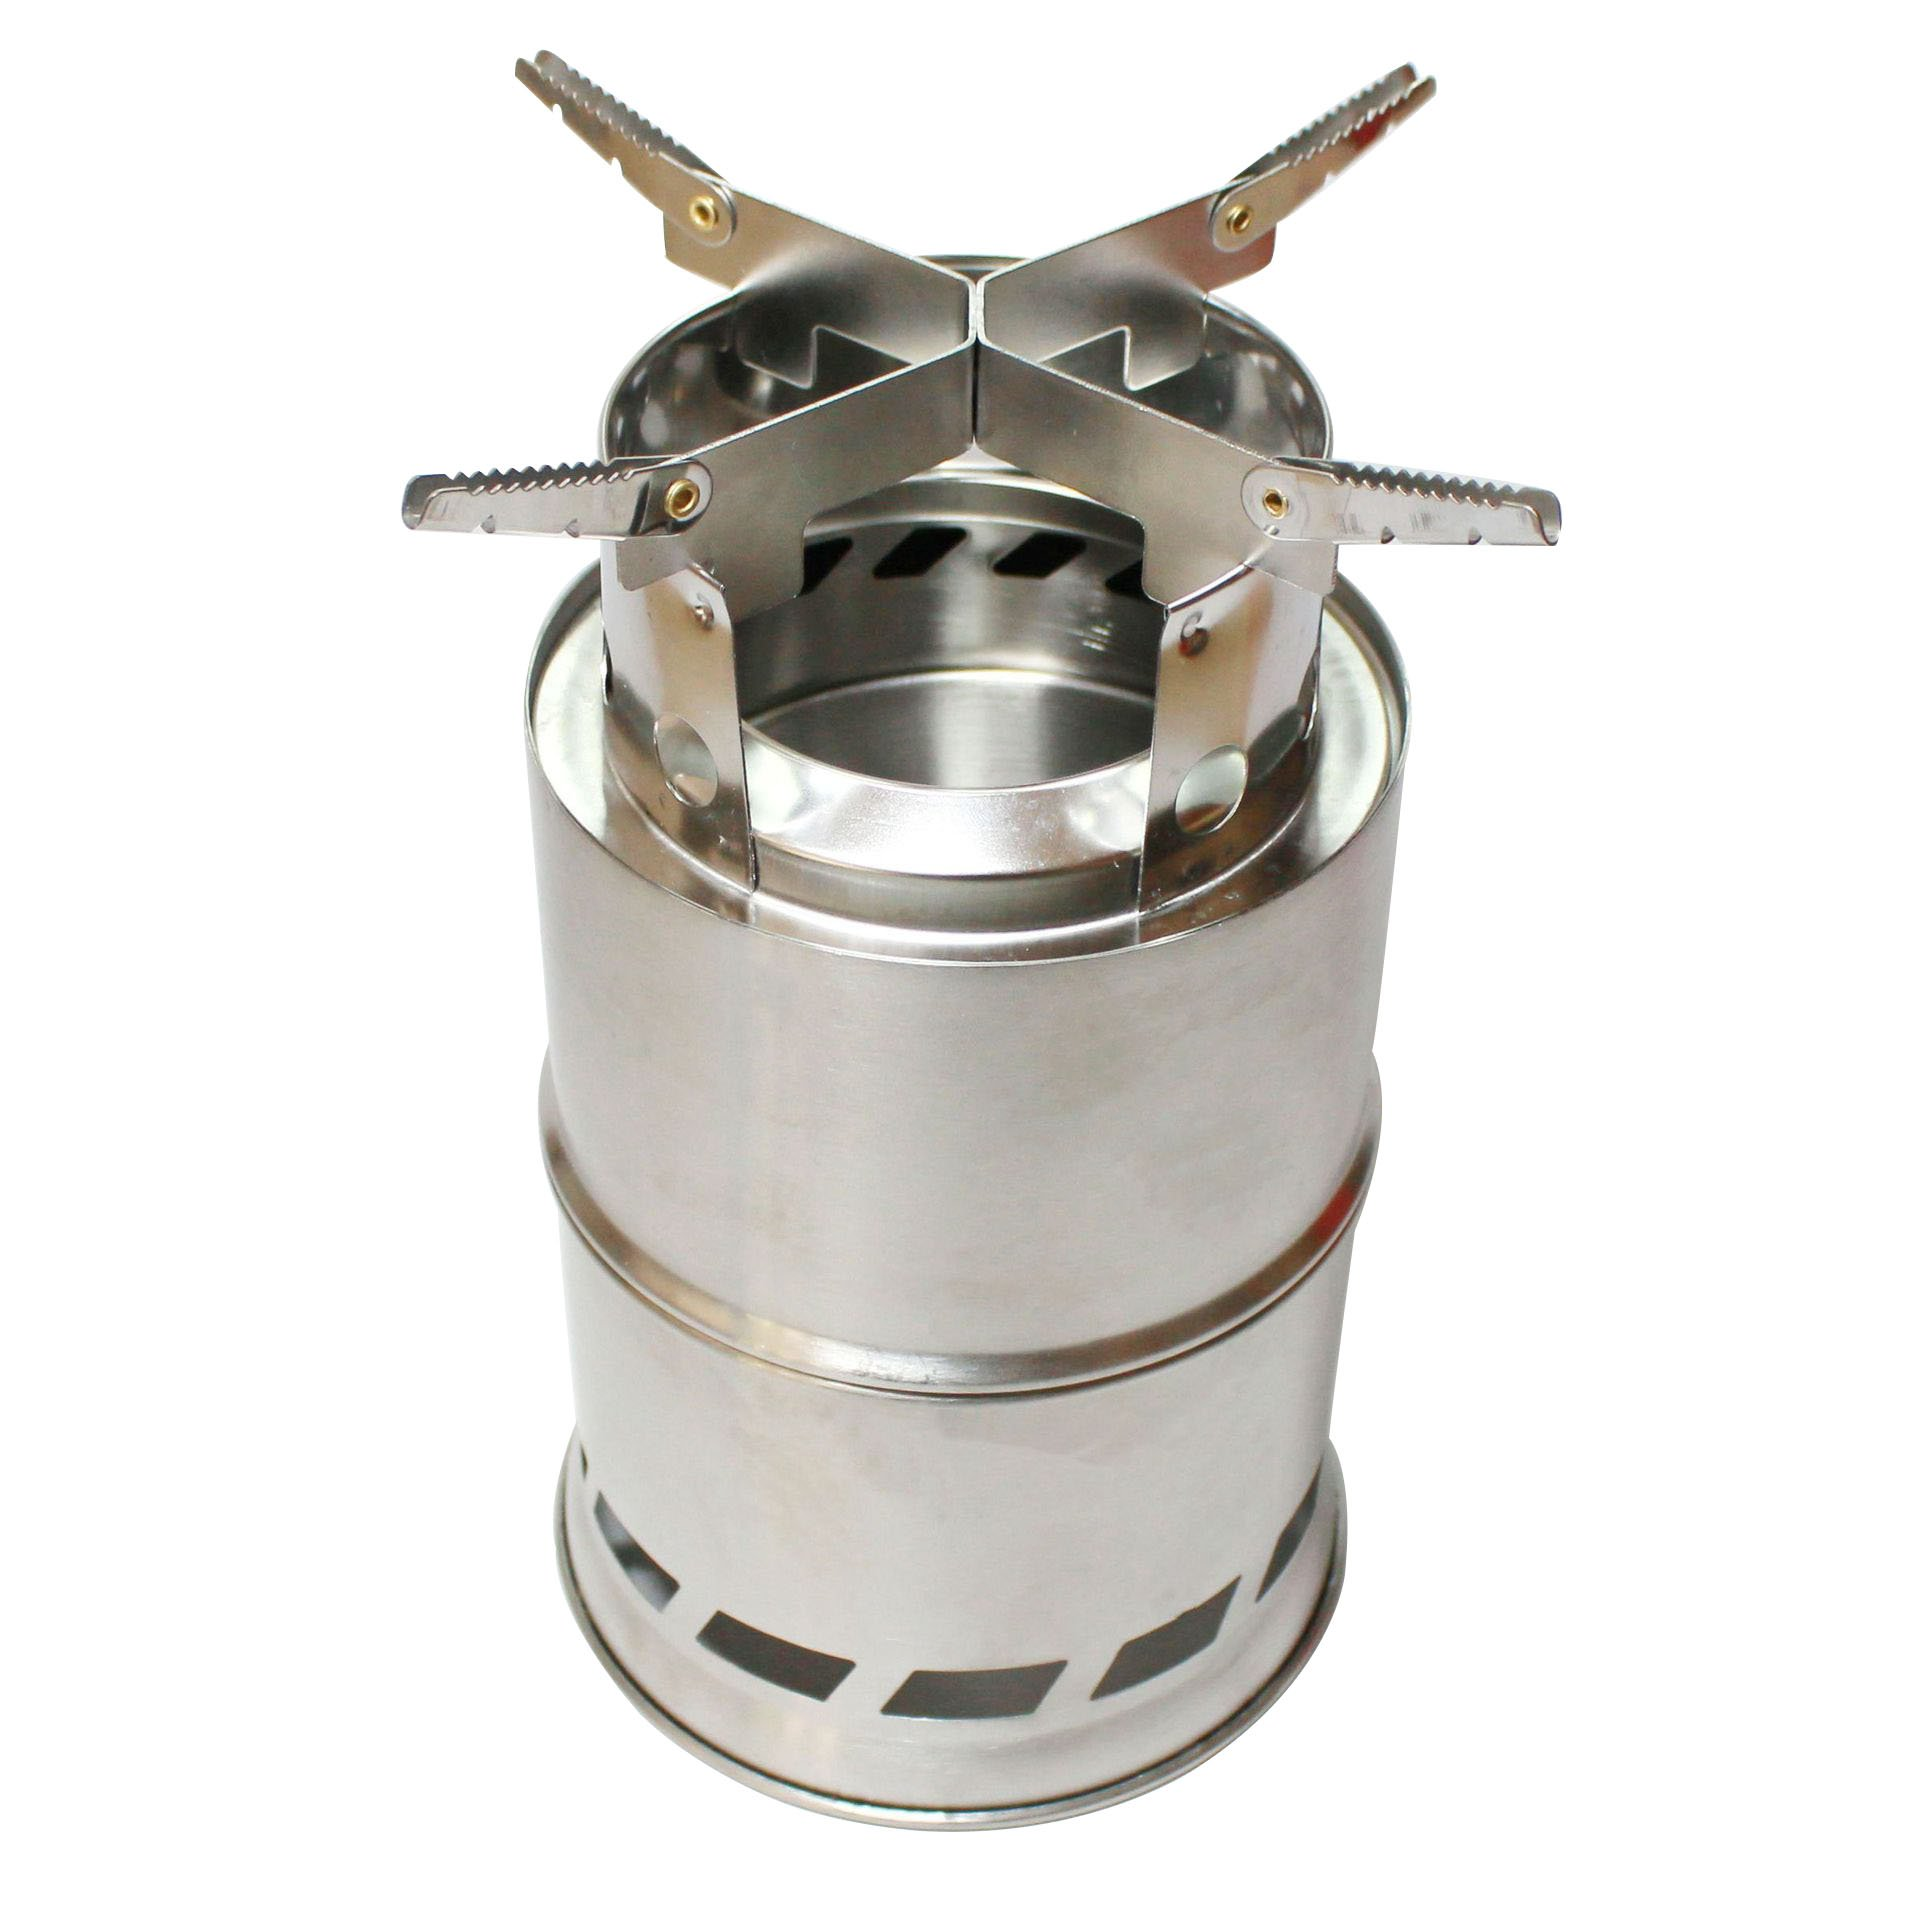 kbxstart Camping Stove, Wood Stove/Backpacking Stove,Portable Stainless Steel Wood Burning Stove for Outdoor Picnic BBQ Camp Hiking